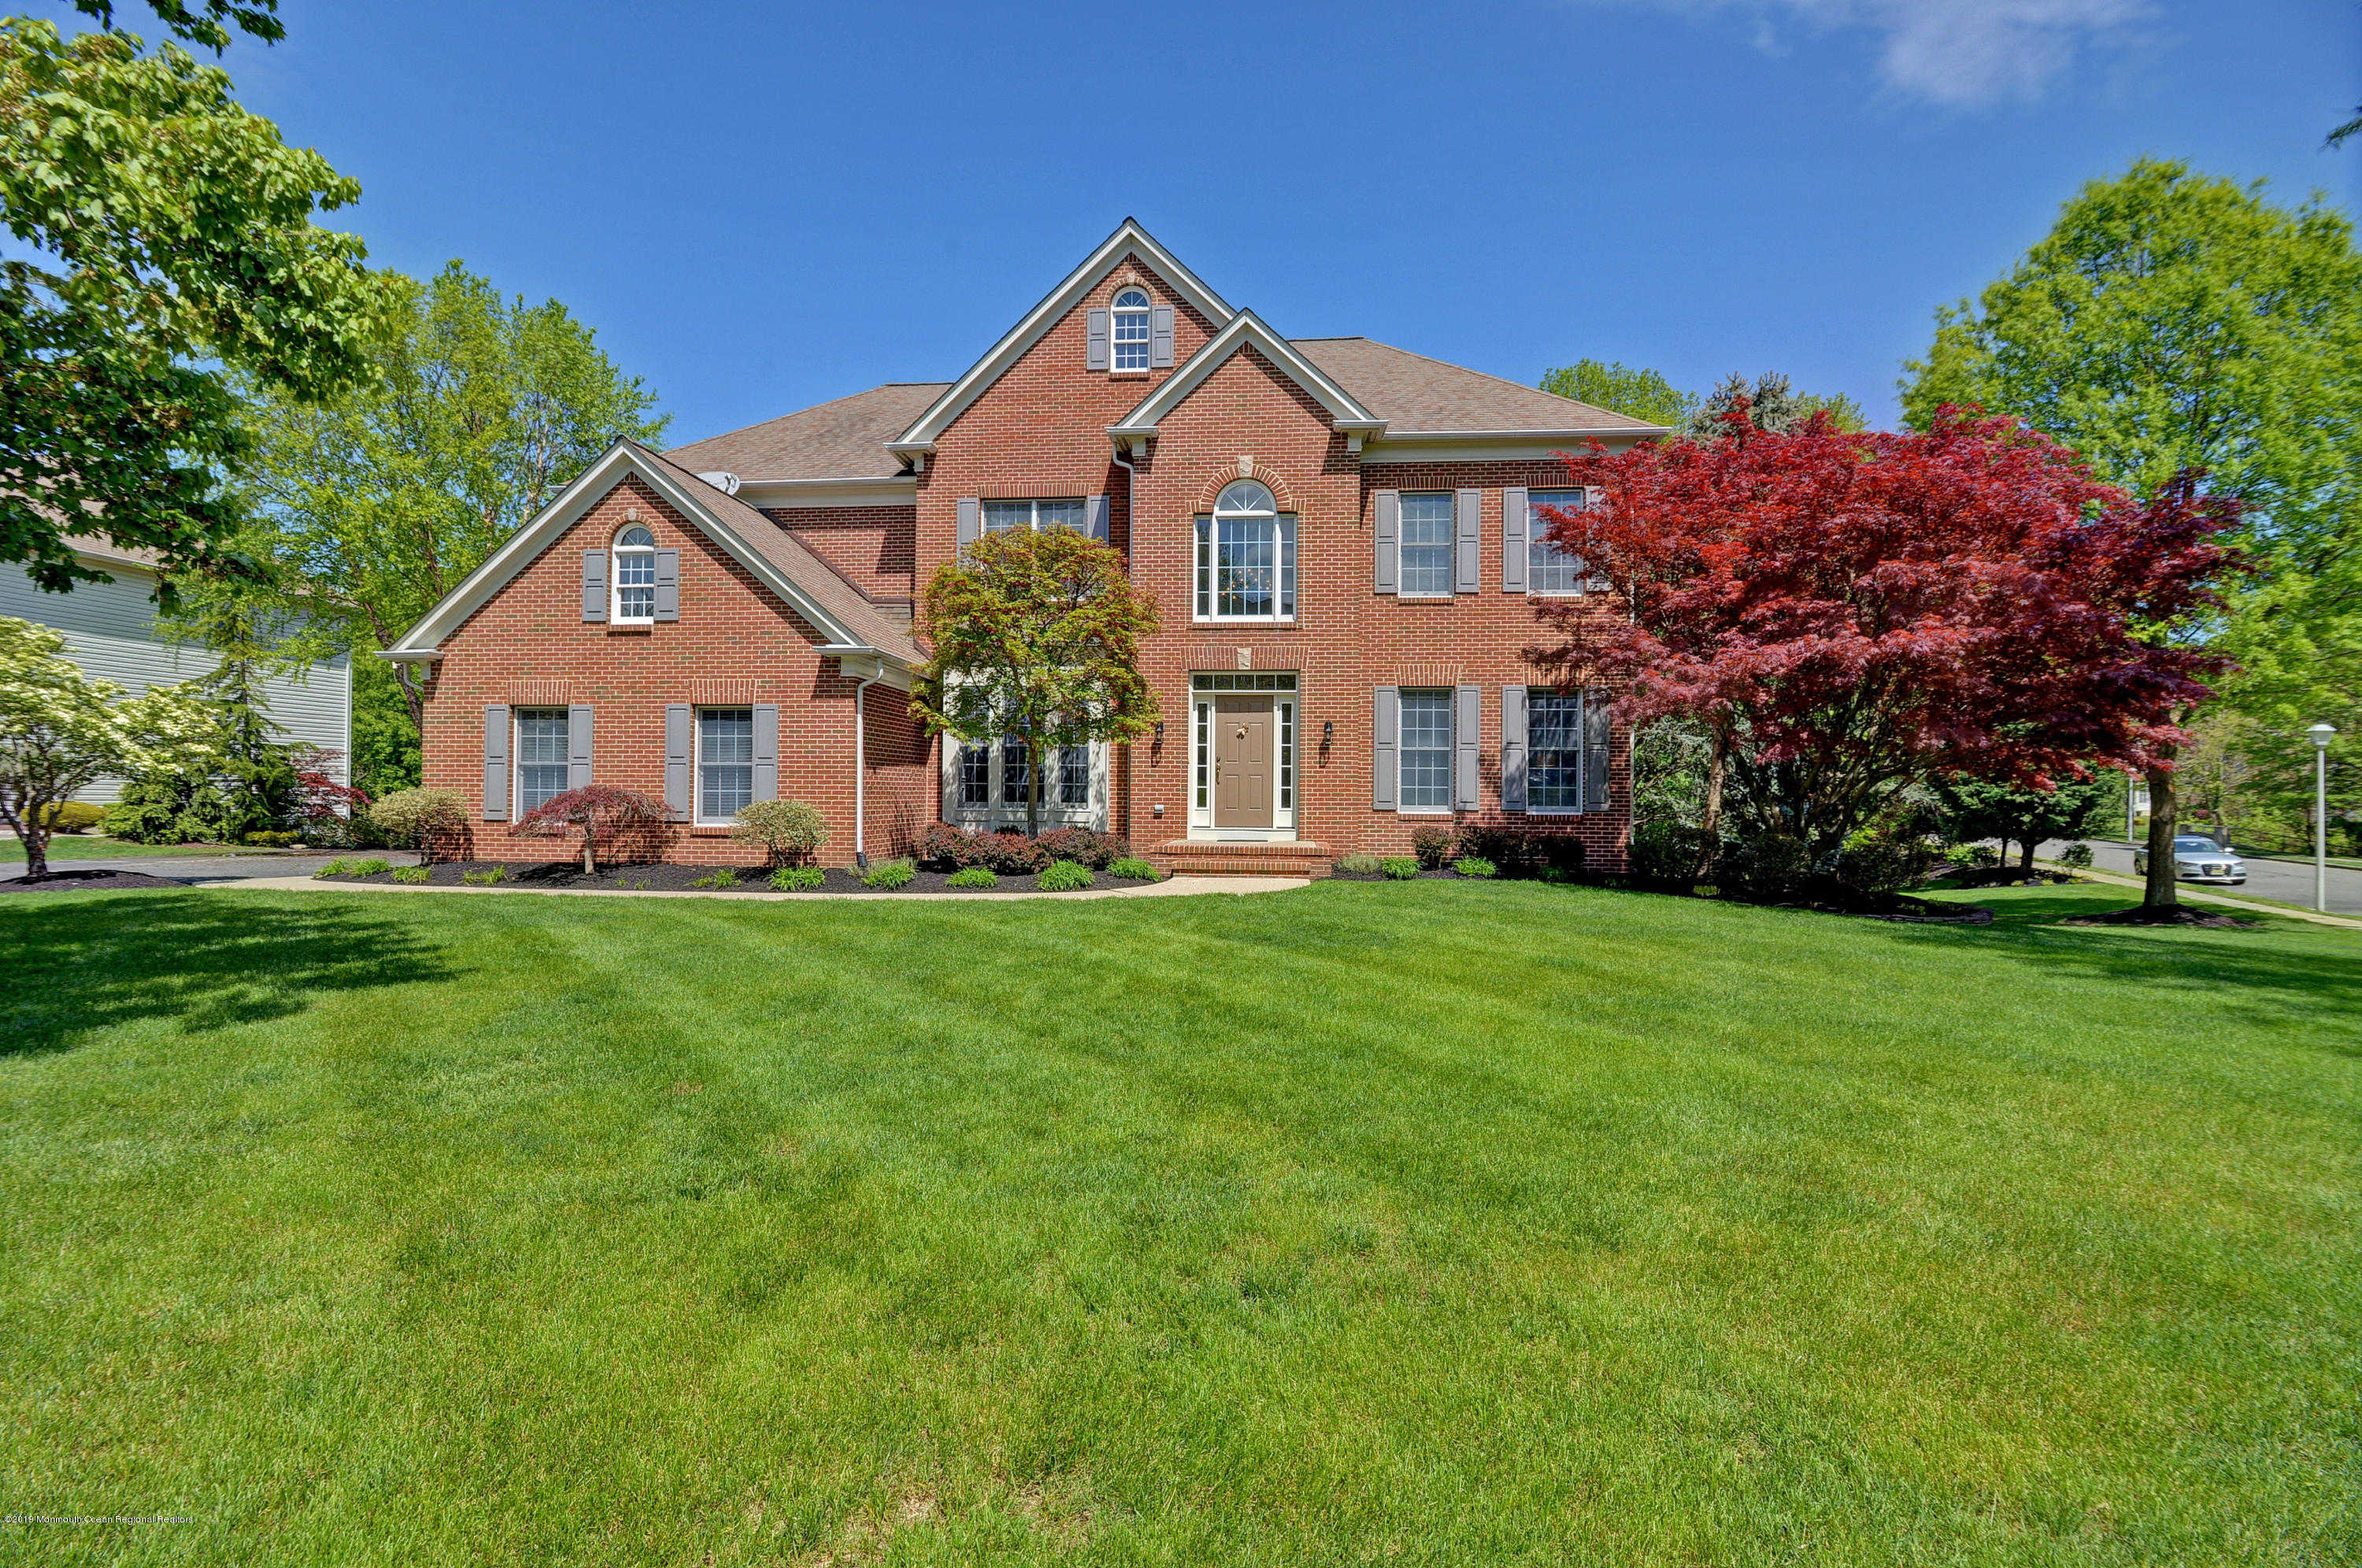 2 Sage Street, Holmdel, NJ 07733 now has a new price of $929,000!